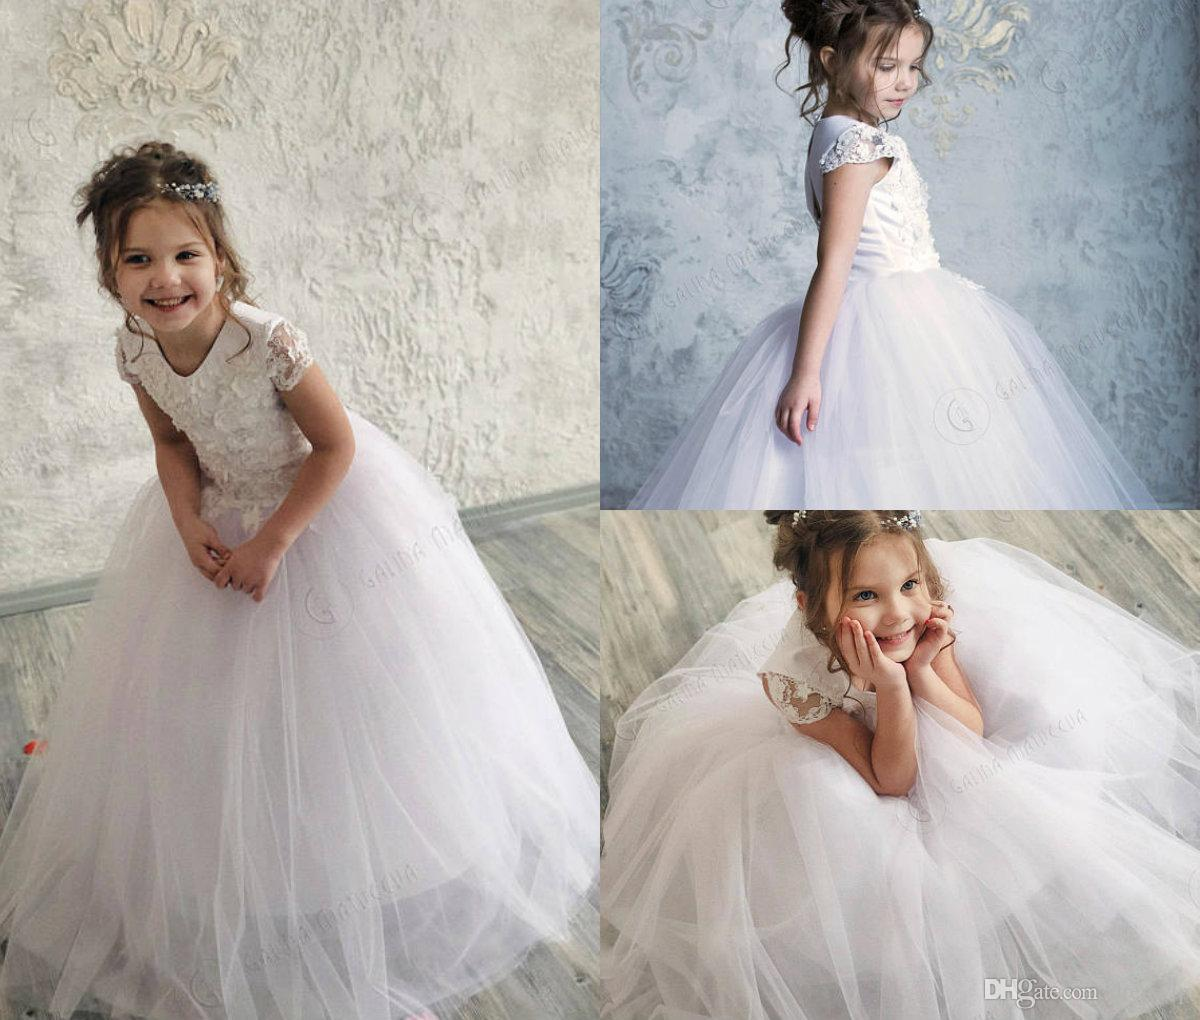 b80424afb68 2018 White Flower Girl Dresses Cap Sleeve Lace Applique Ball Gown Girls  Pageant Dress Birthday Party Gown Lace Up Back First Communion Dress Royal  Blue ...